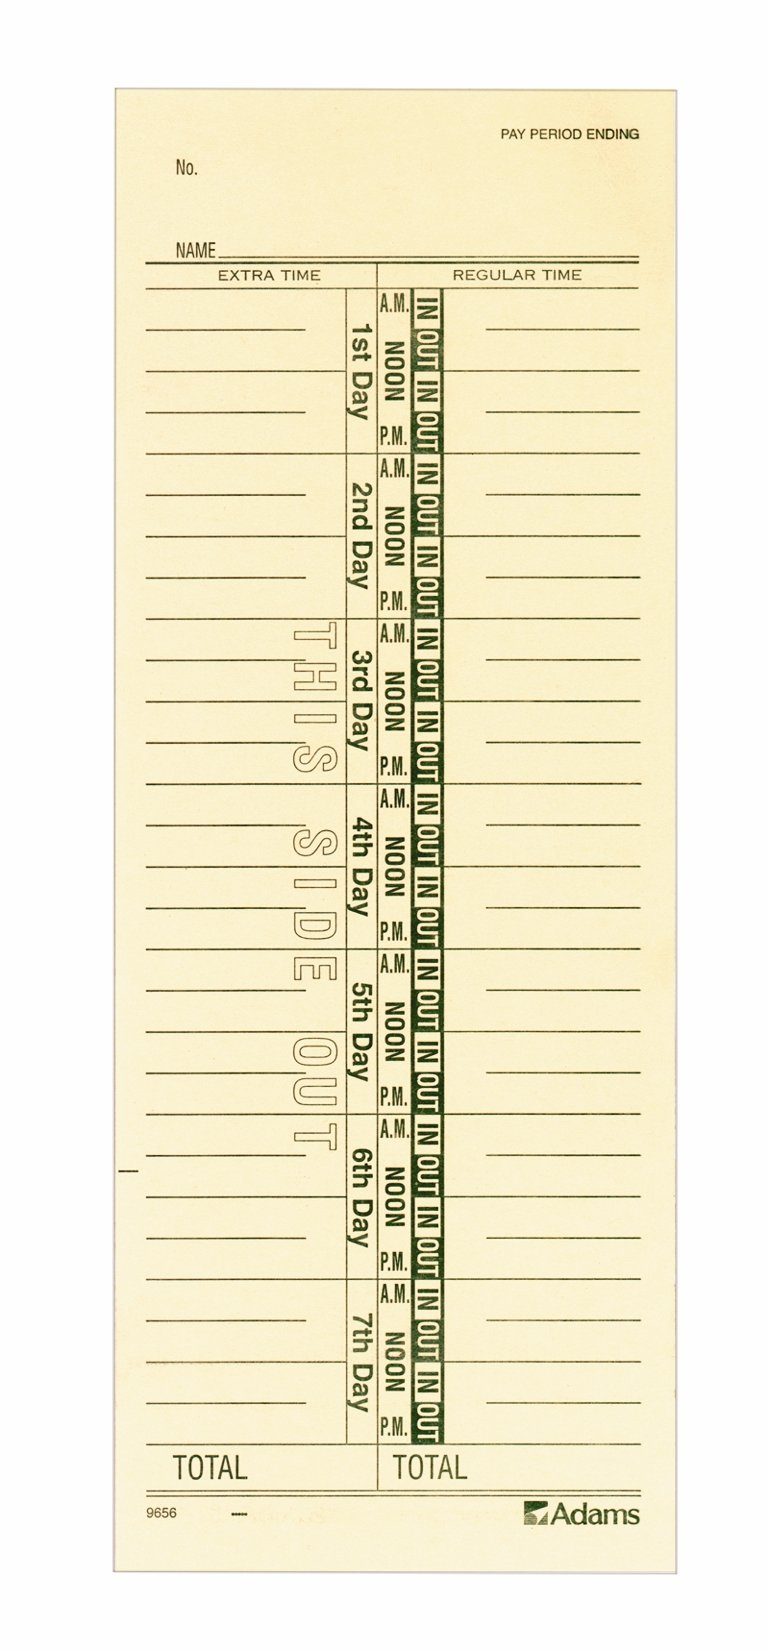 Adams Time Cards, Weekly, 1-Sided, Numbered Days, 3-3/8'' x 9'', Manila, Green Print, 200-Count (9656-200)